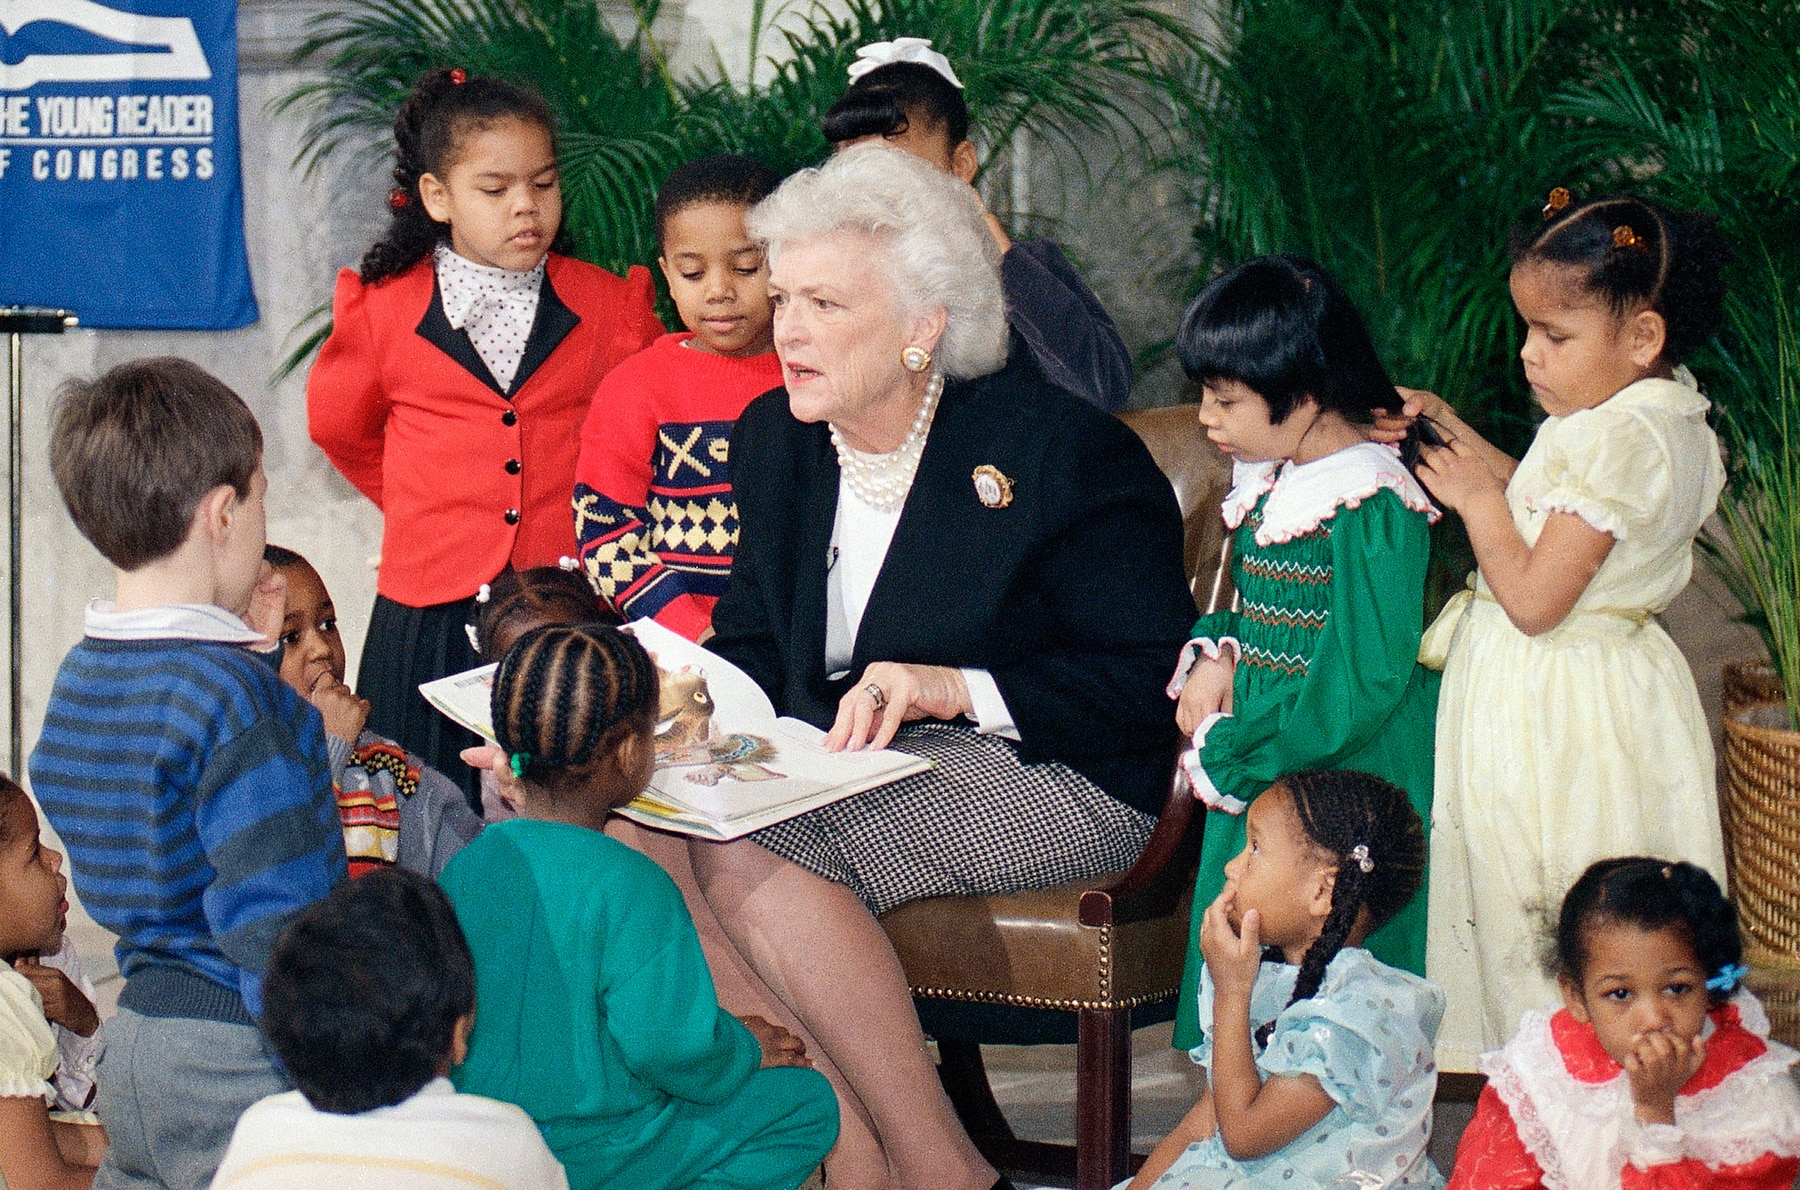 Barbara Bush sitting in a chair reading to children (© Charles Tasnadi/AP Images)